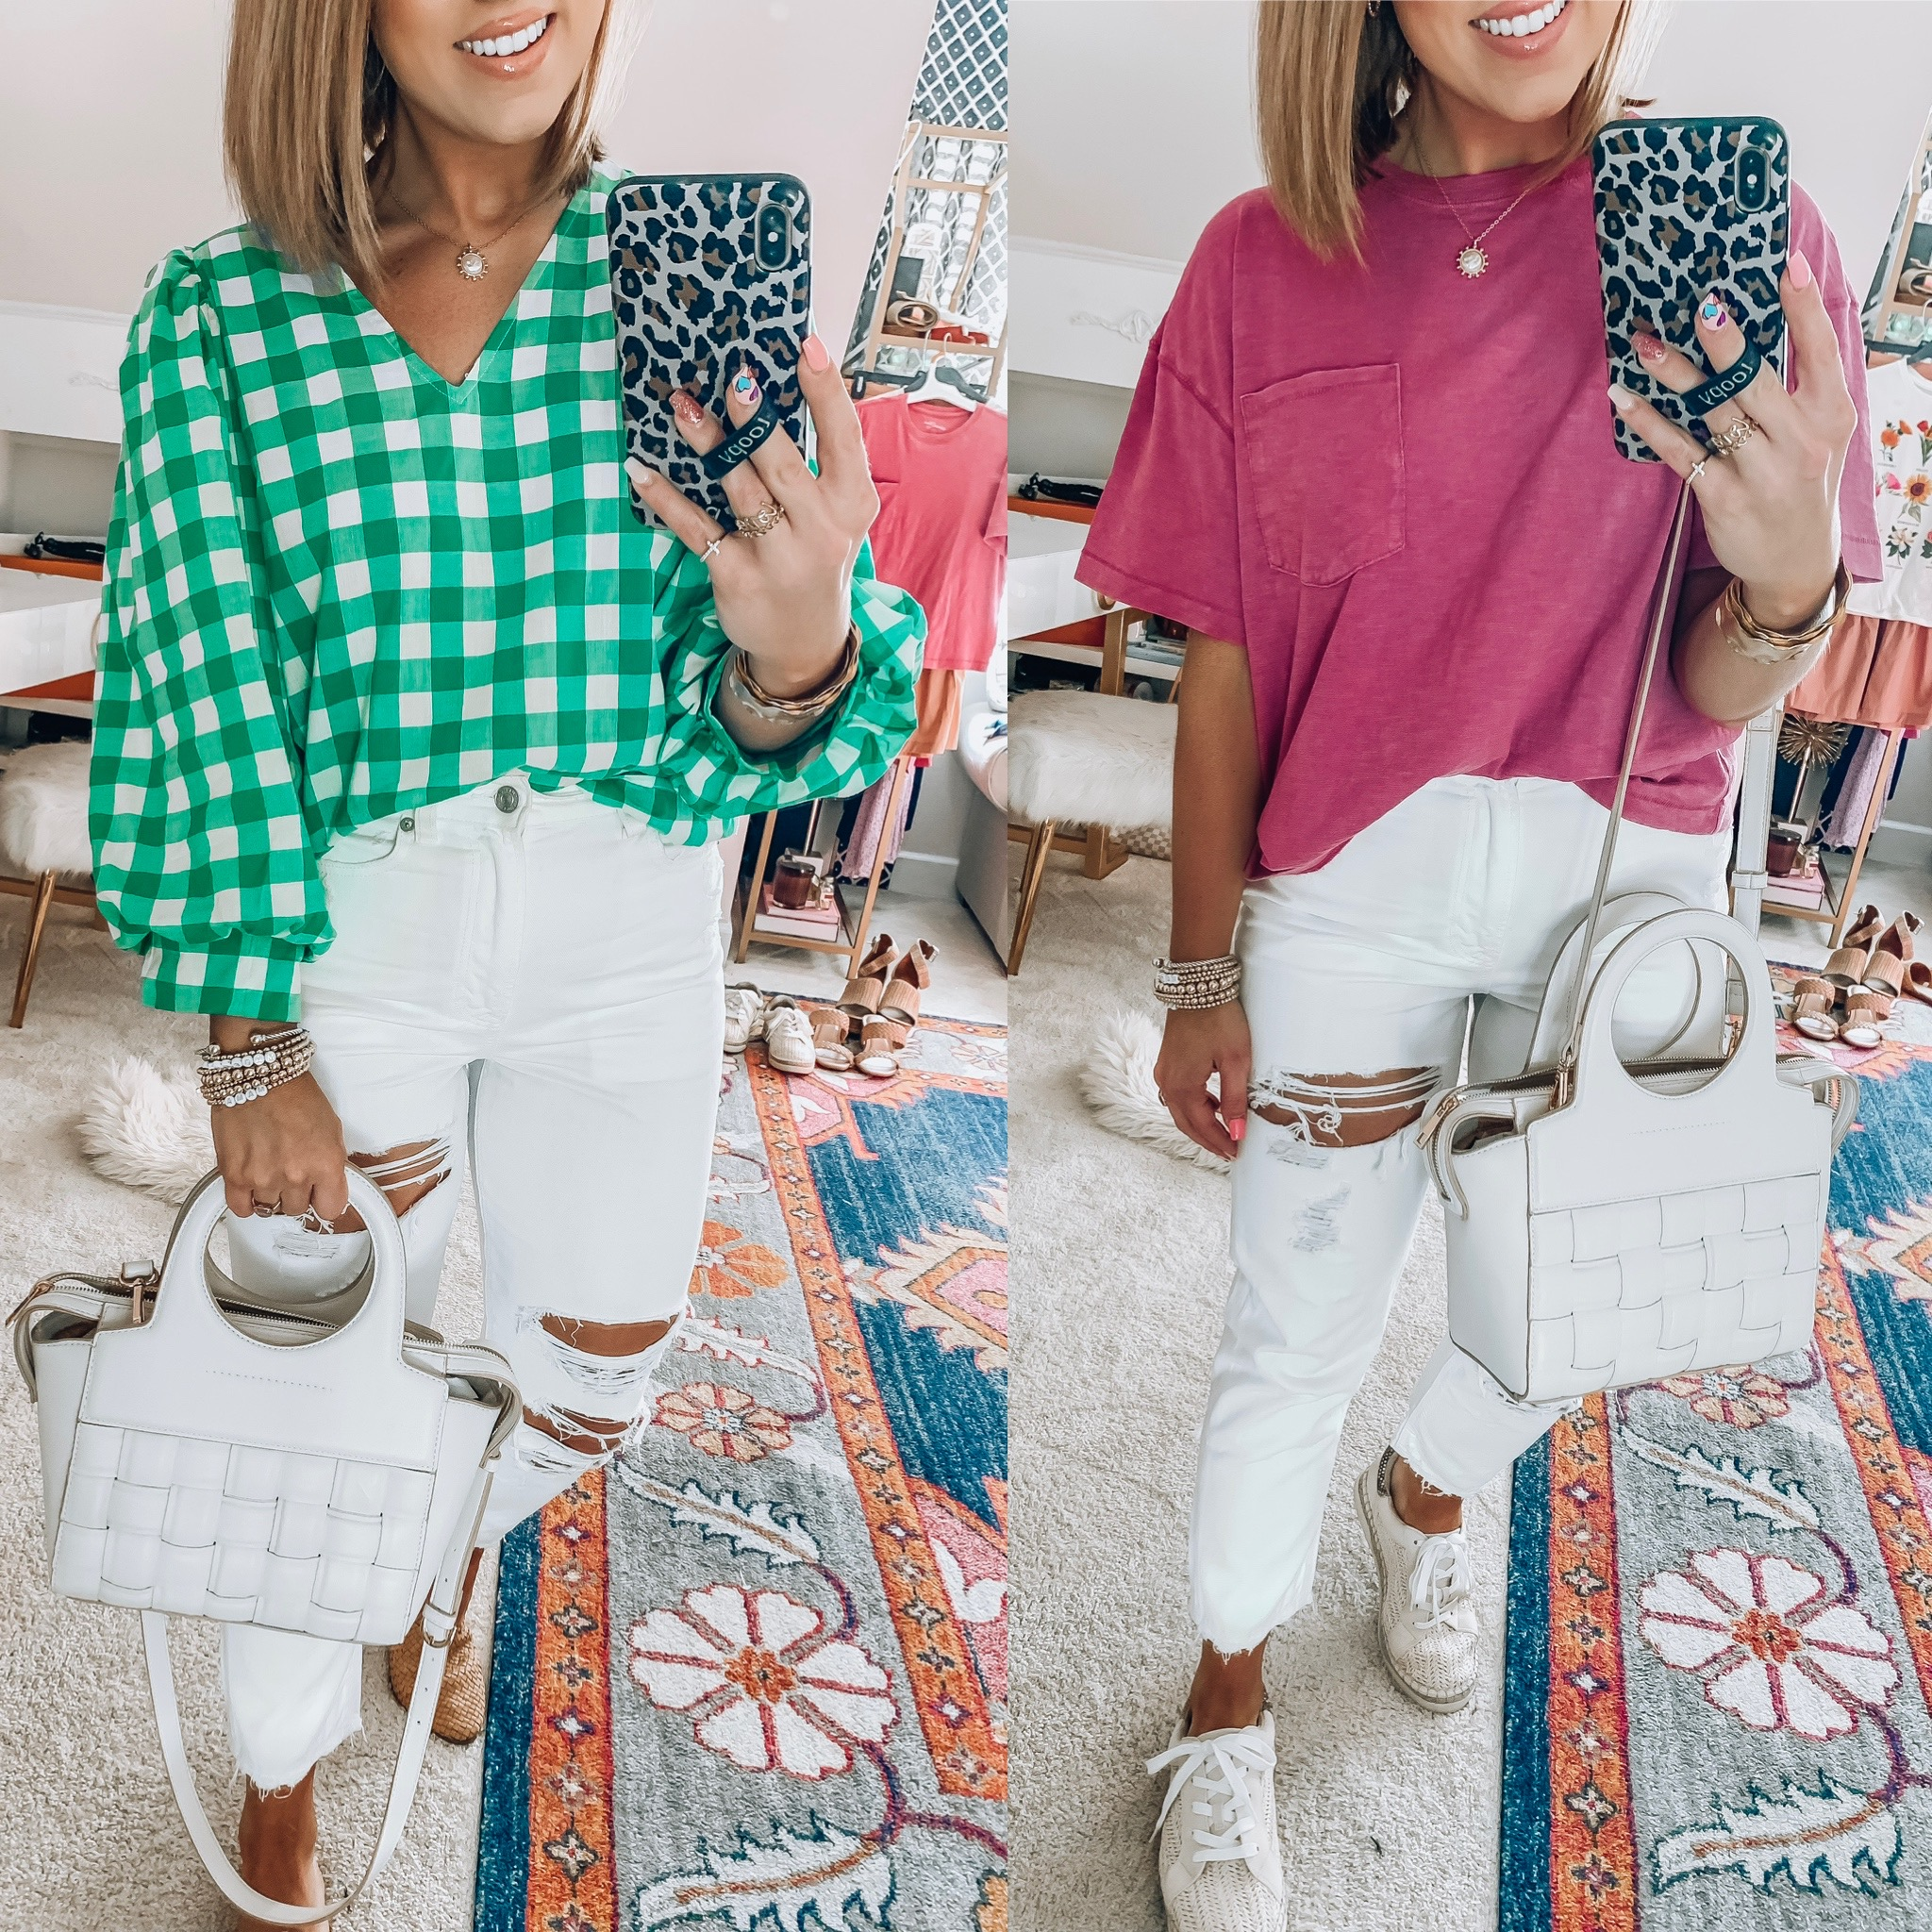 Target 2021 Spring Finds - Styled Target Looks - Something Delightful Blog #targetstyle #targetfashion #targetspringstyle